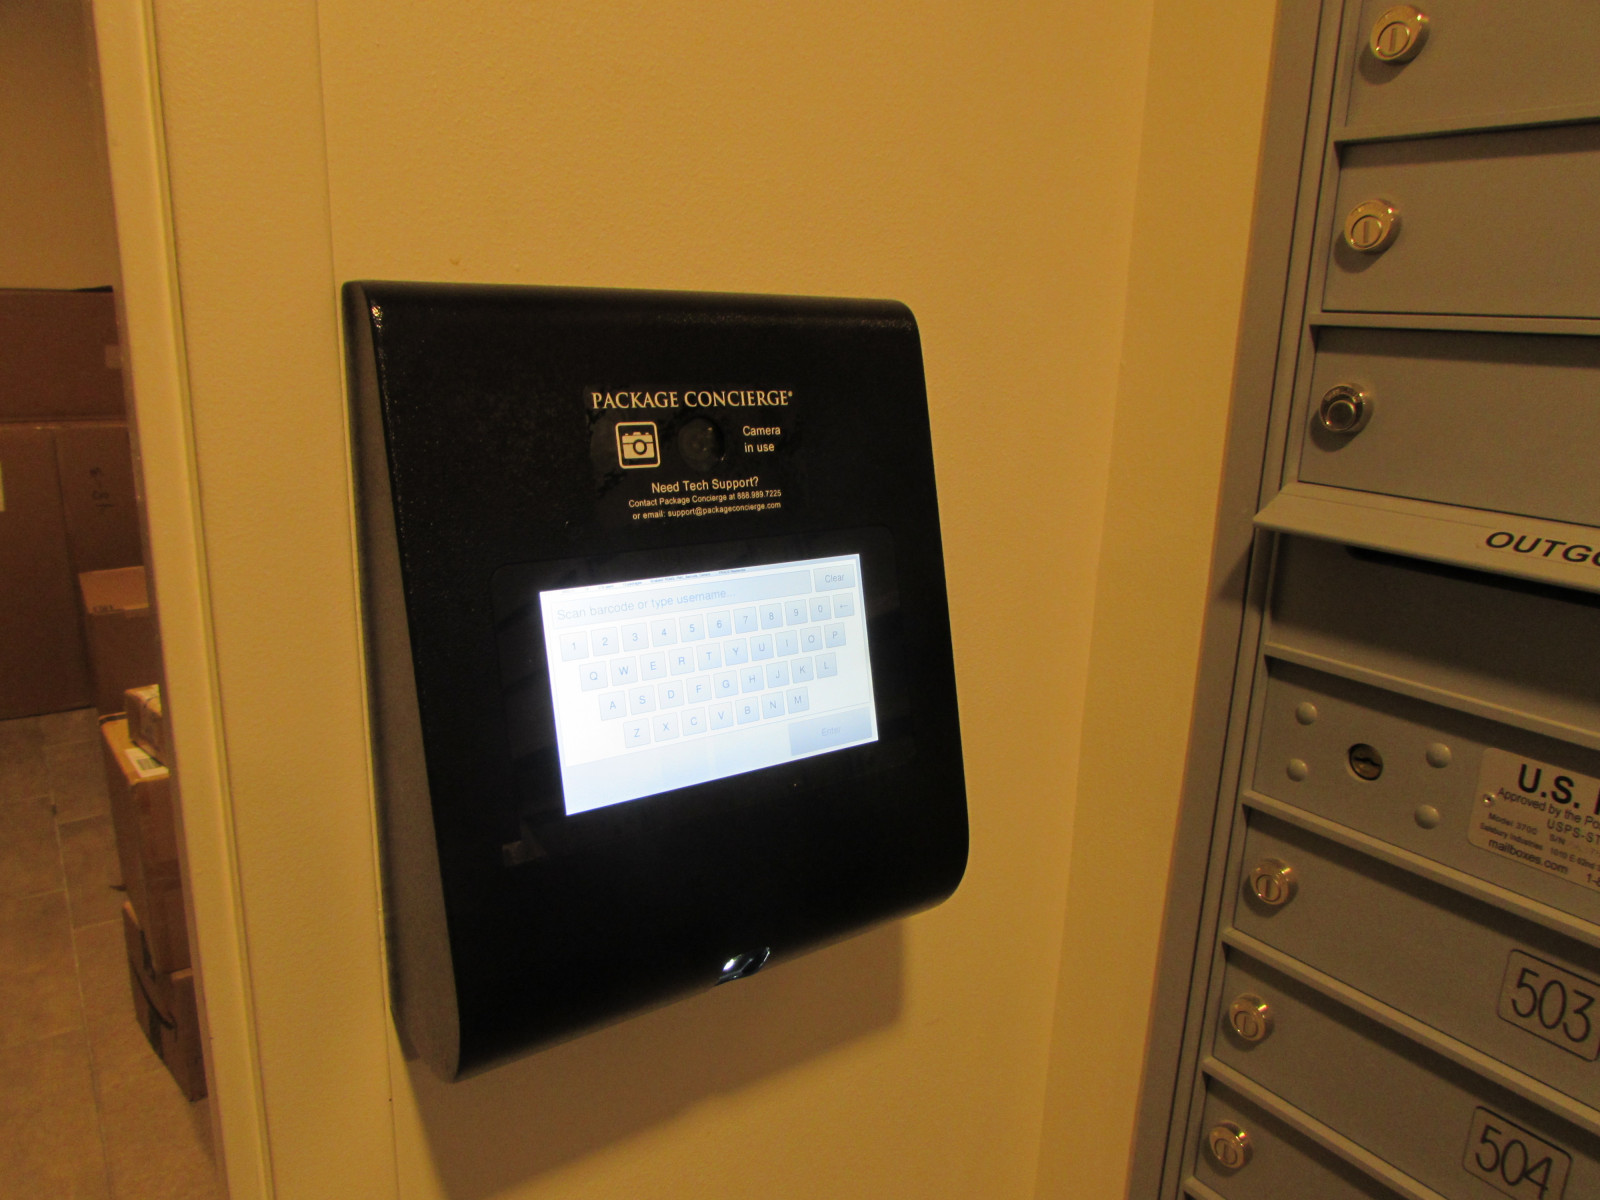 Access Control Kiosk Panel for Package Room